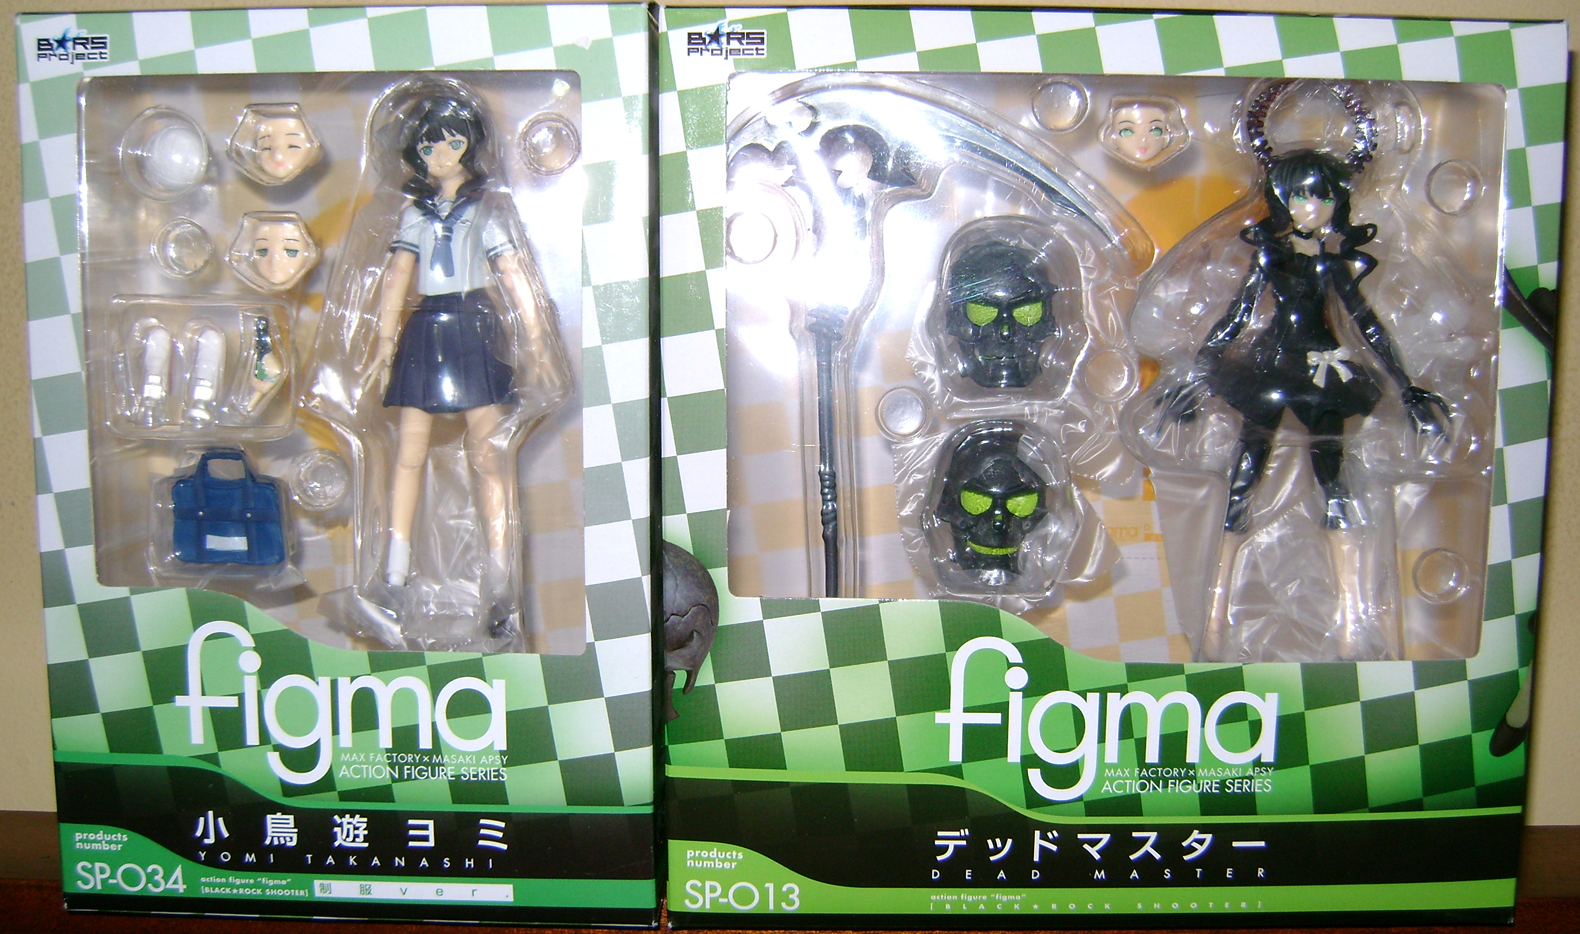 DM 7 Figma Fanatic!  Yomi Takanashi and Dead Master!